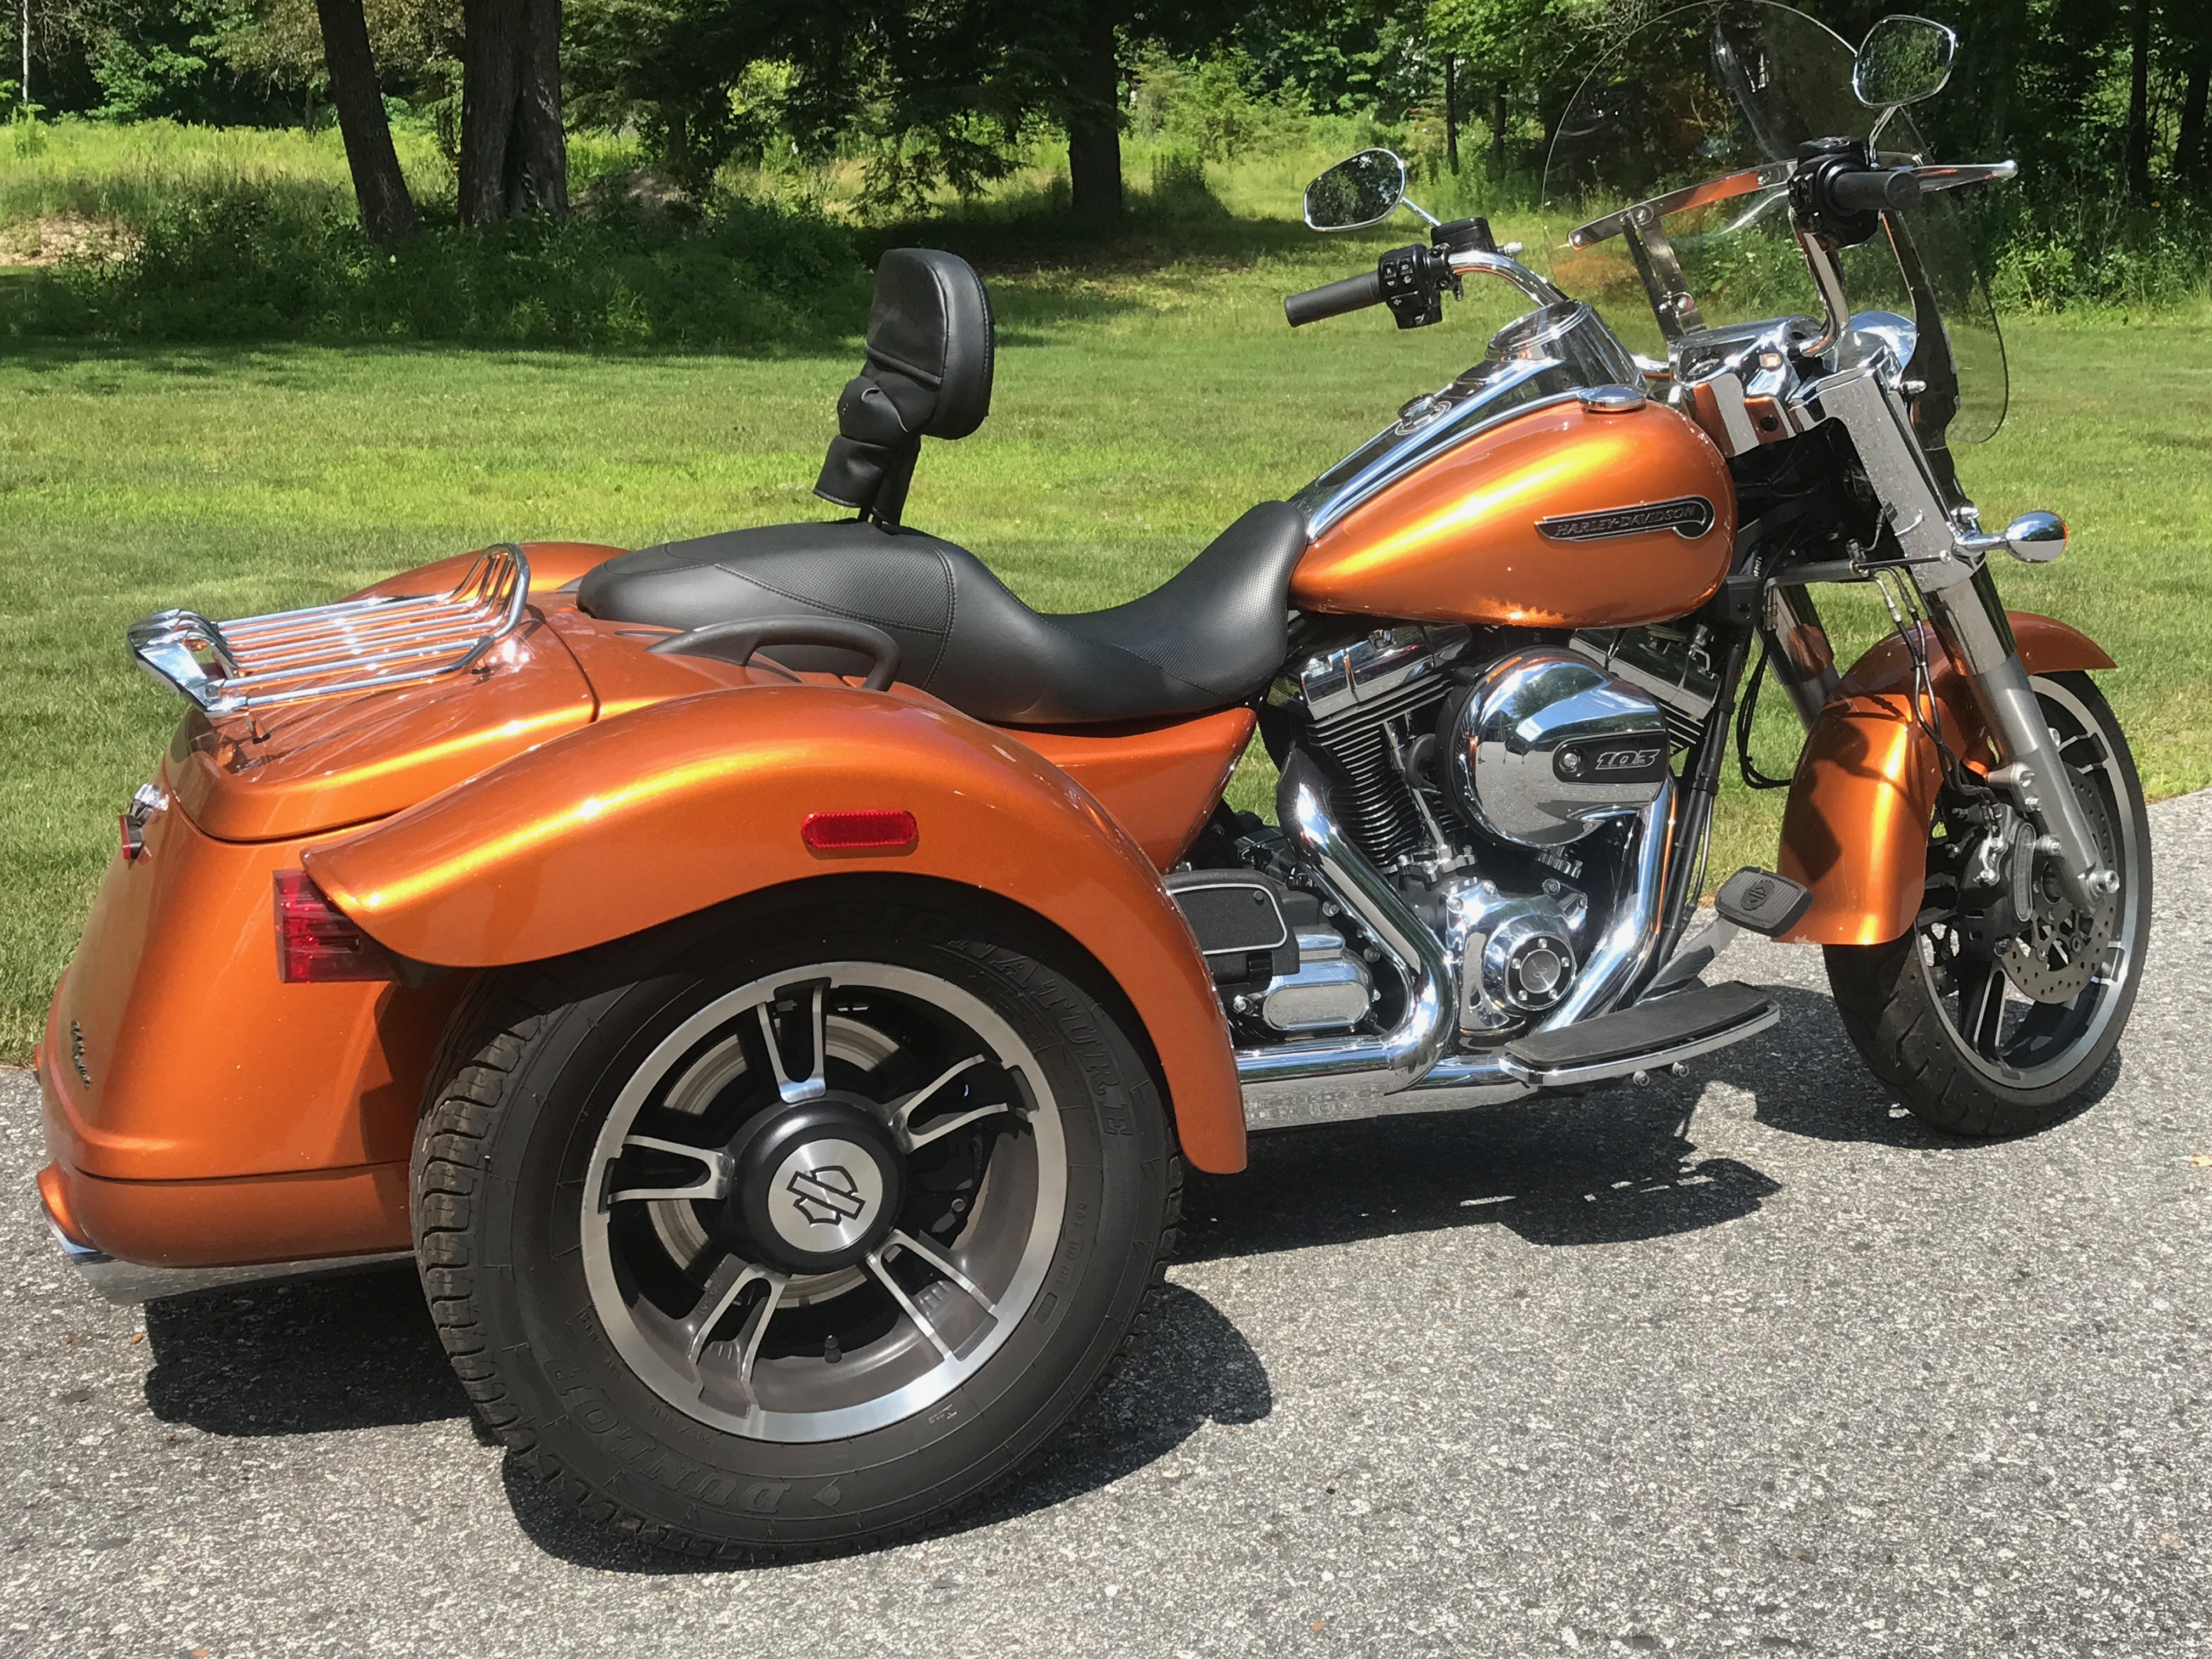 Motorcycles For Sale San Marcos Tx >> 2015 Harley-Davidson® FLRT Freewheeler™ (Whiskey orange), Standish, Maine (736699) | ChopperExchange